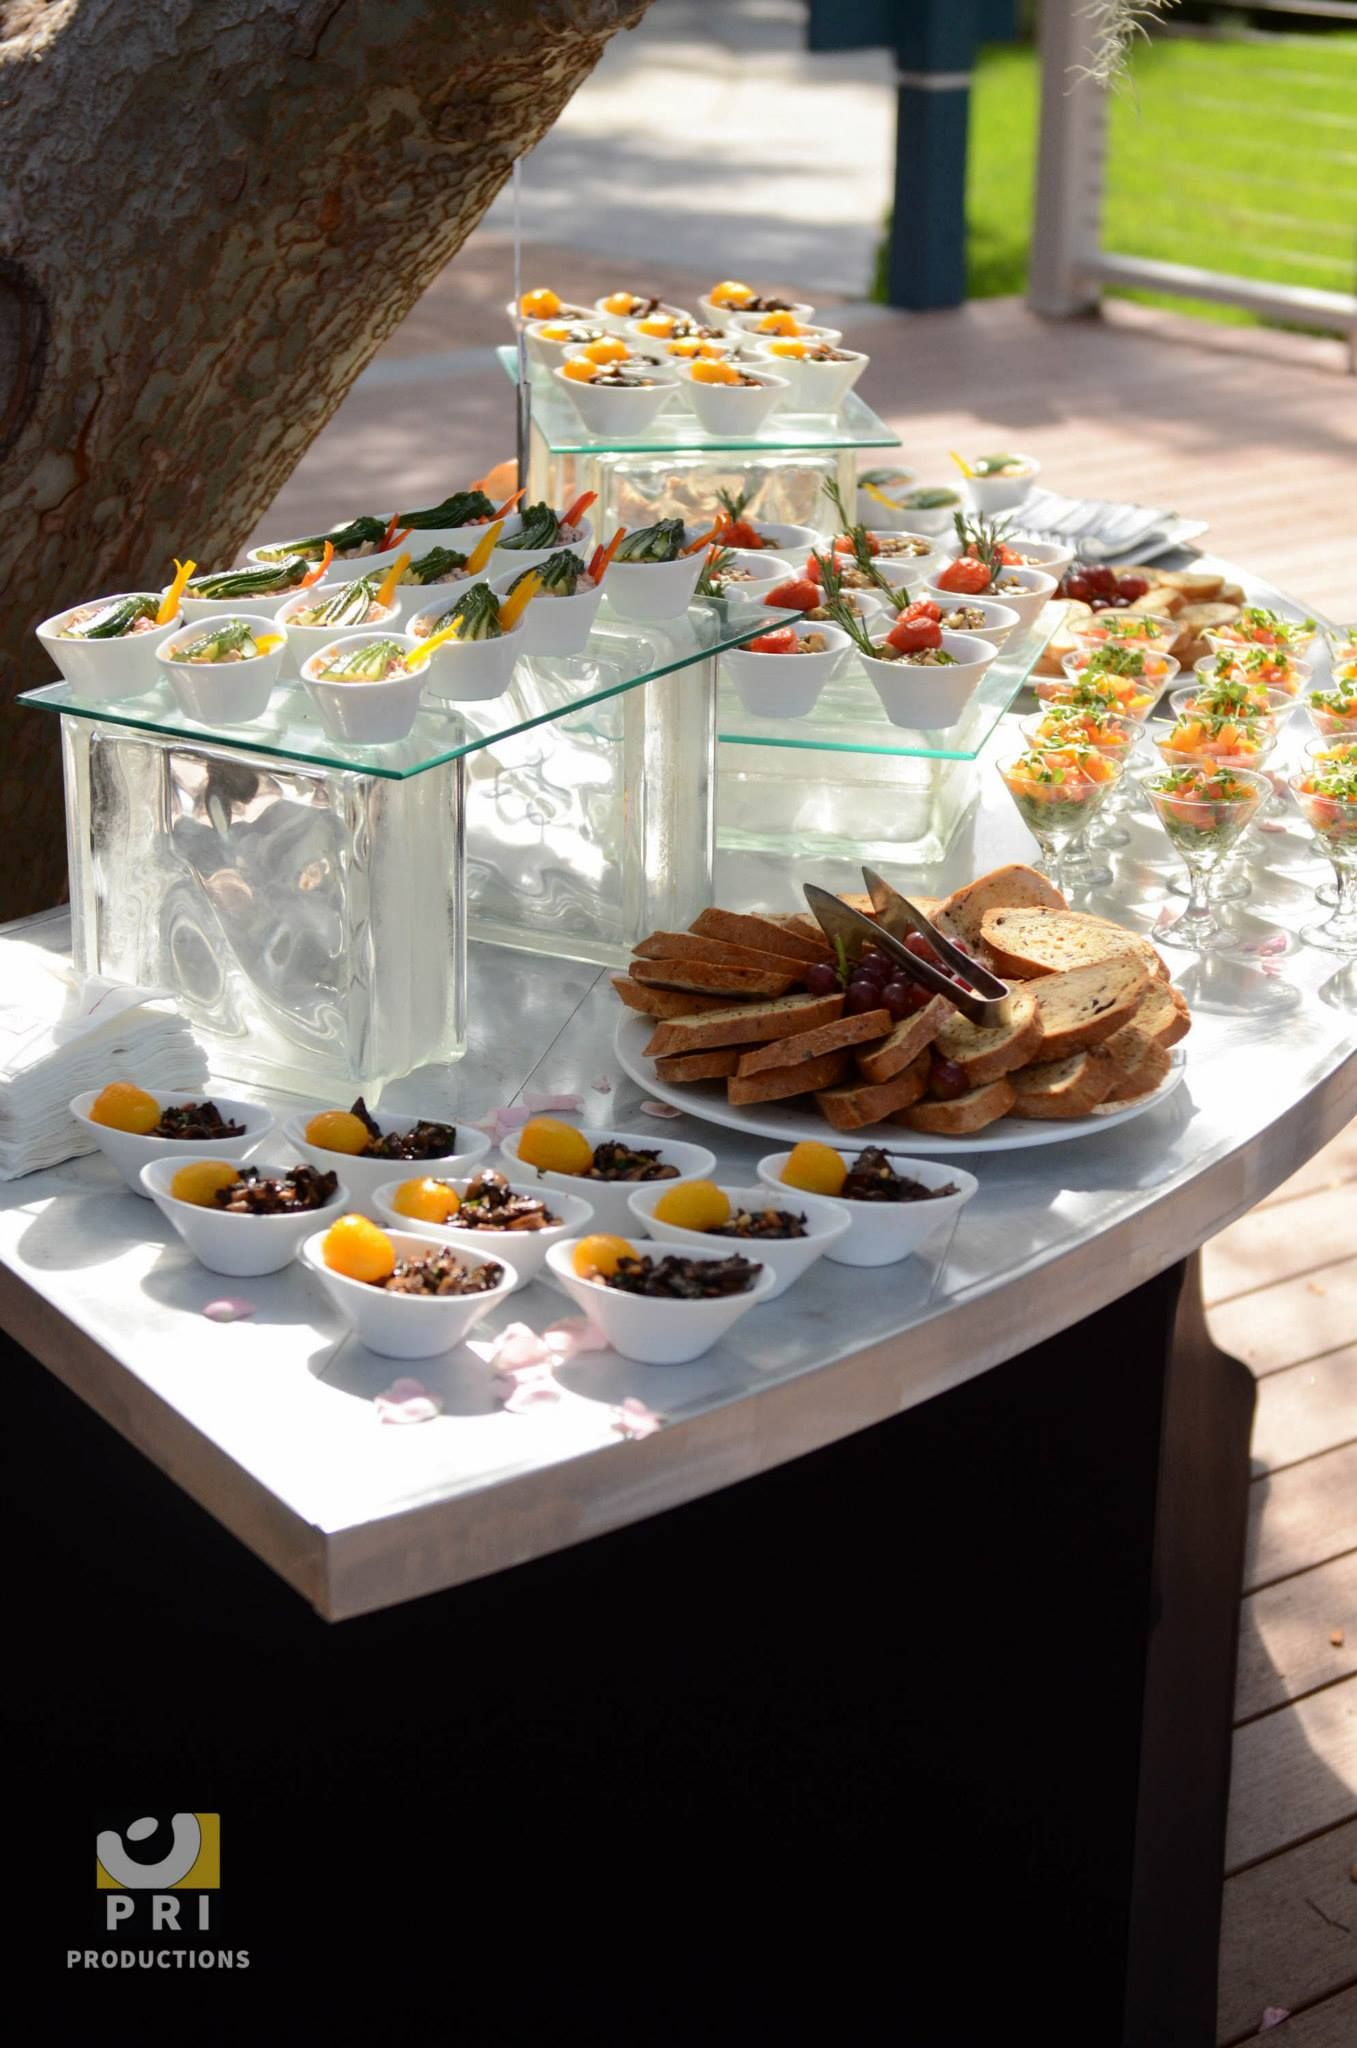 Outdoor table set up for wedding guests appetizers